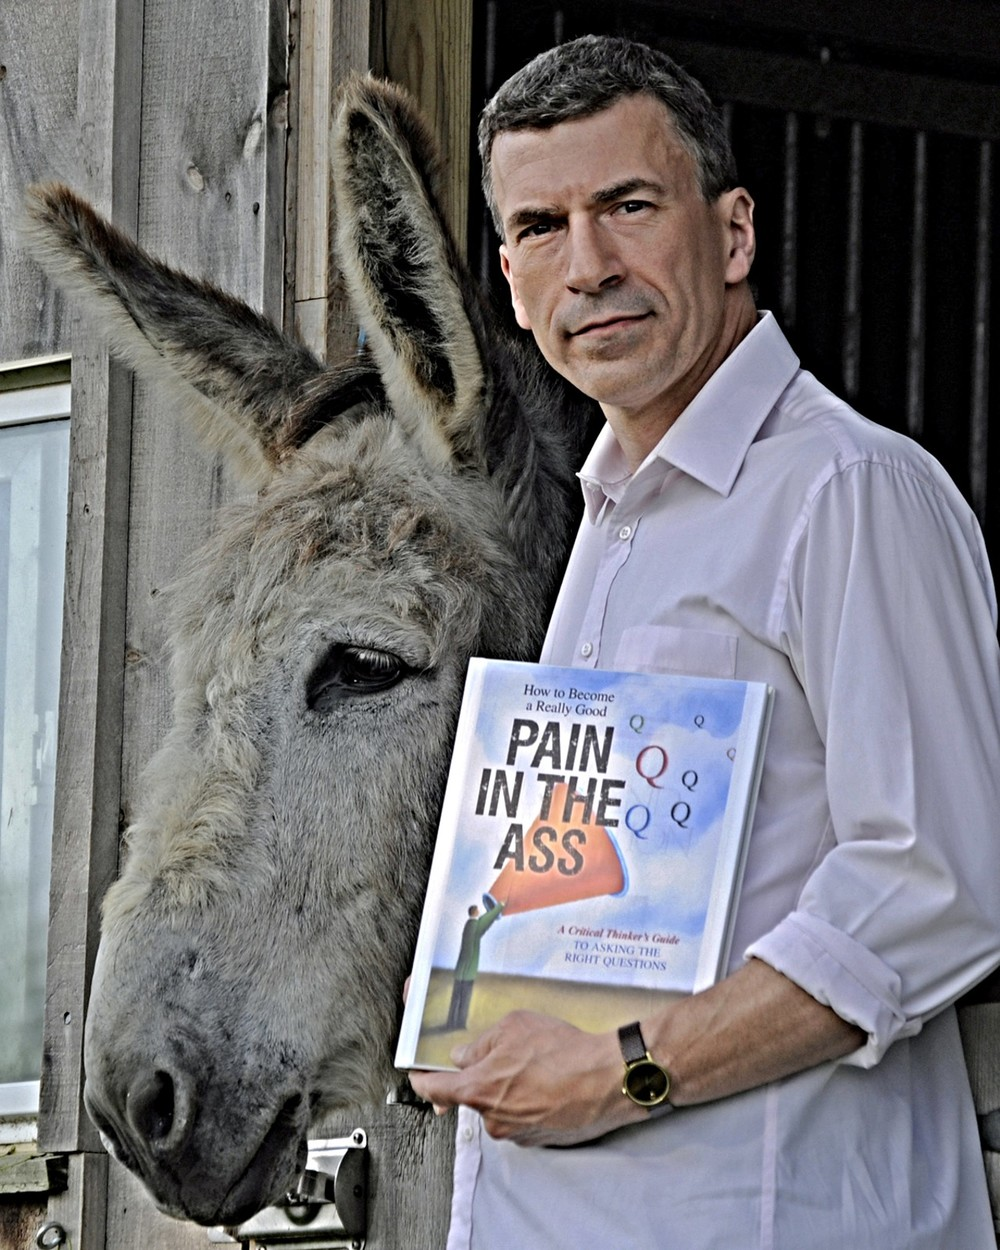 Christopher DiCarlo and his Critical Donkey